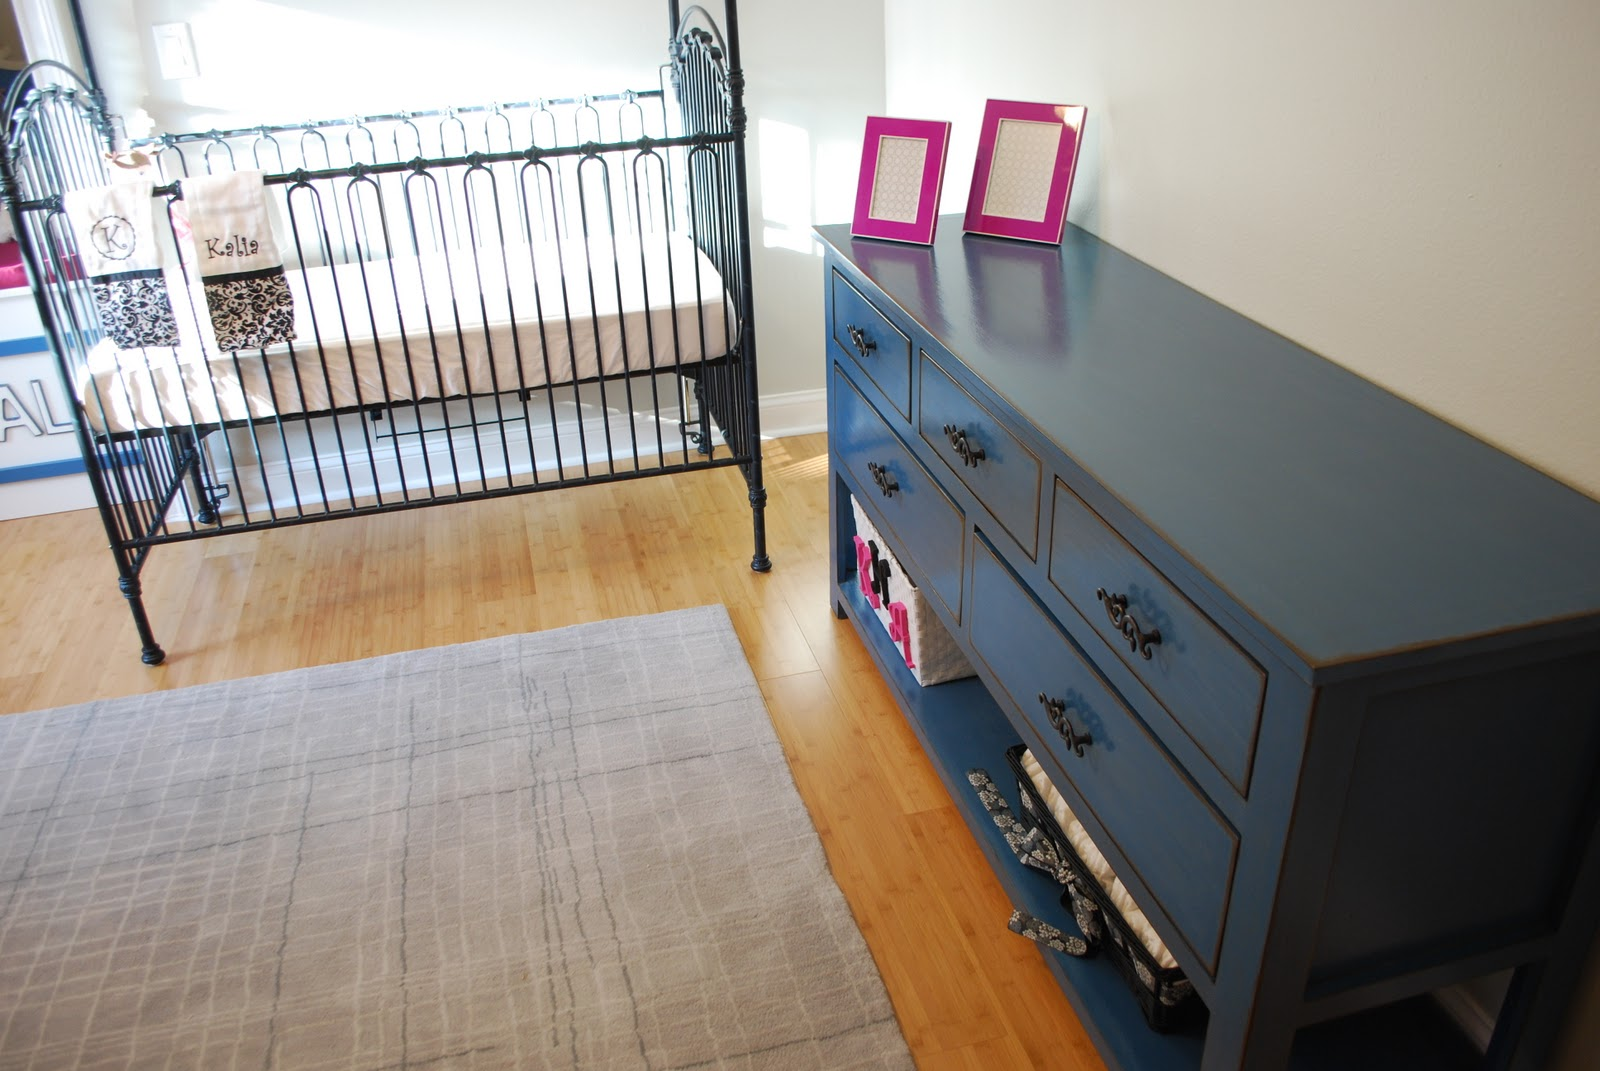 Groovy Dresser With Open Bottom Shelf For Changing Table Ana White Interior Design Ideas Apansoteloinfo